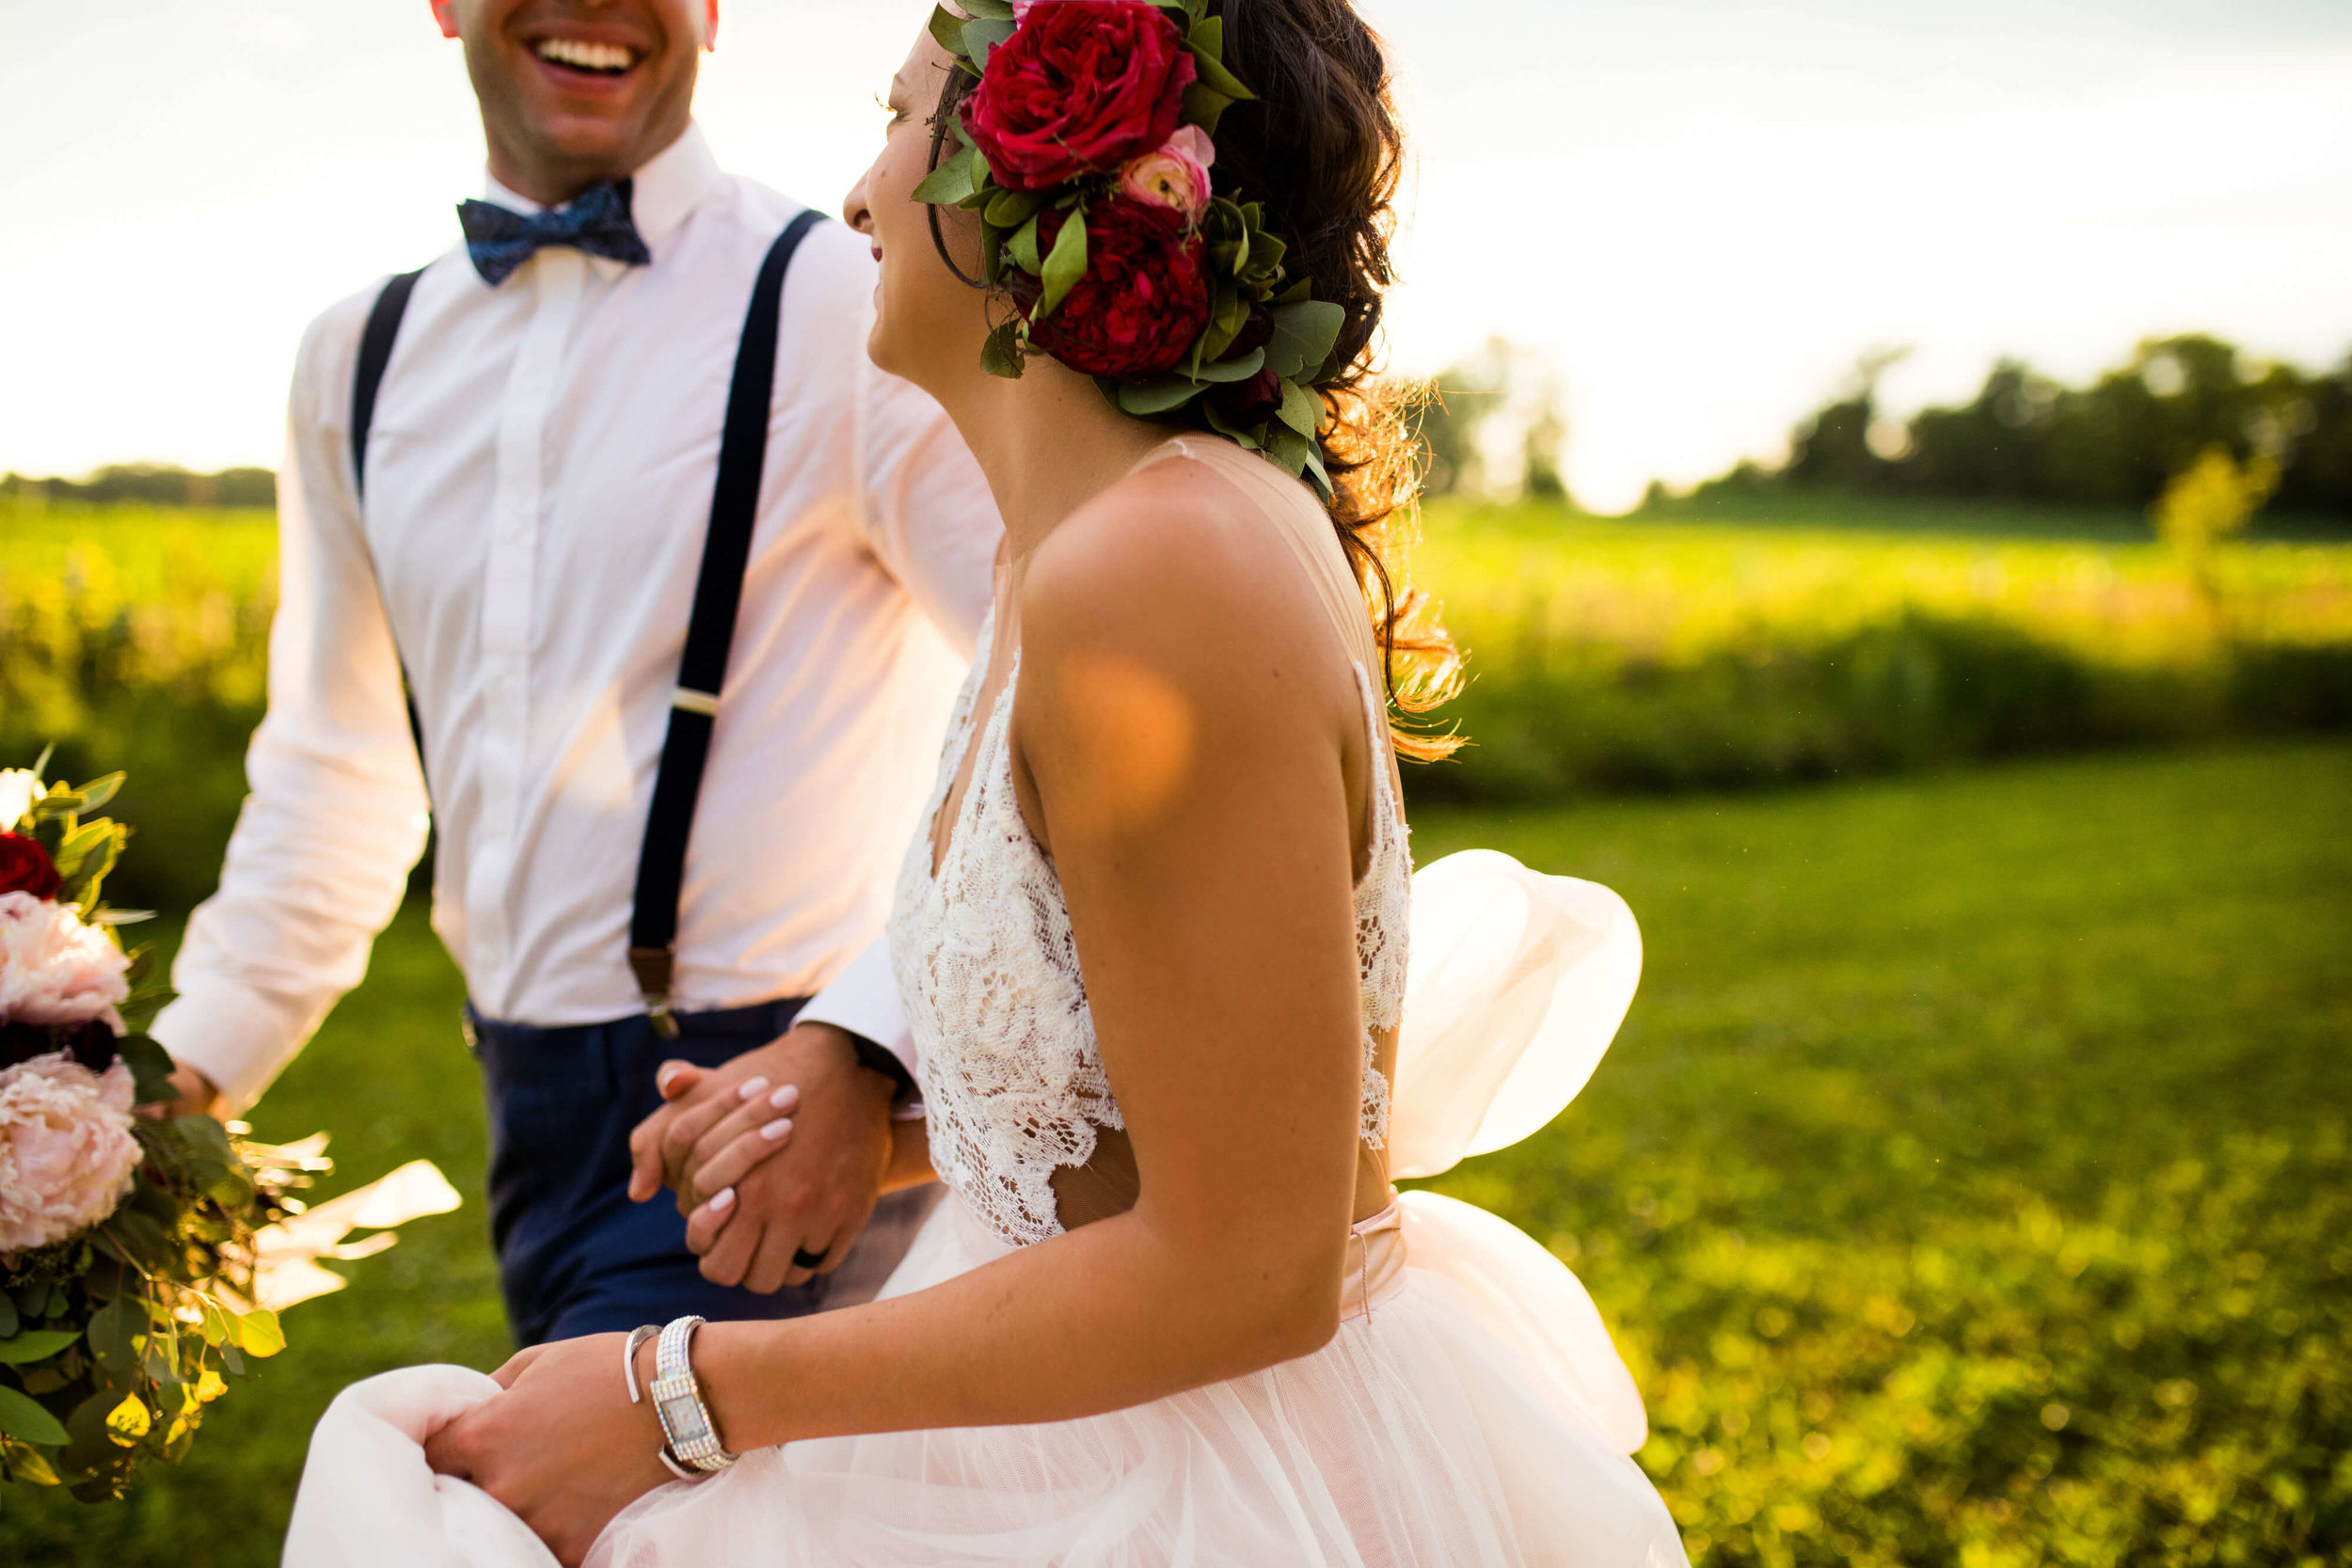 farm wedding | groom in bowtie and suspenders no boutonniere | bride with a watch on and large hair piece | Minnesota wedding photographer Studio KH wedding dress details | wedding blog | Sixpence Events 70 Ways to Photograph Your Wedding Dress.jpg